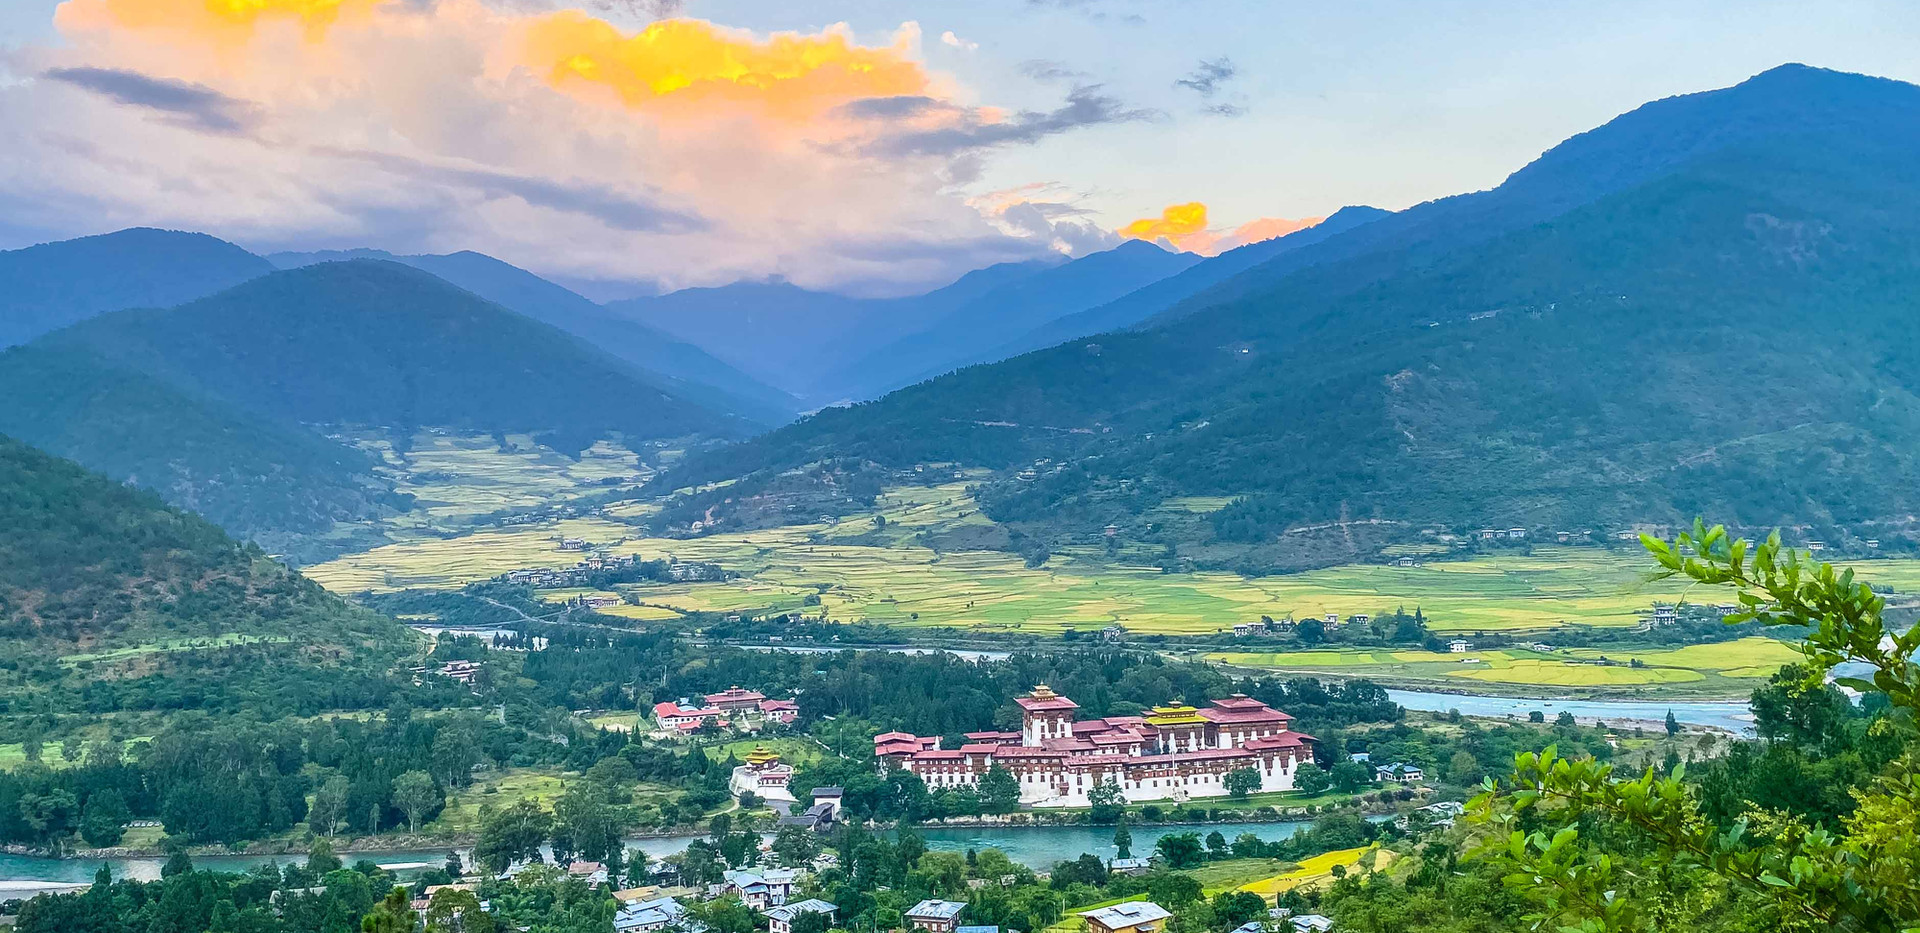 a magnificent view of the Punakha Dzong.